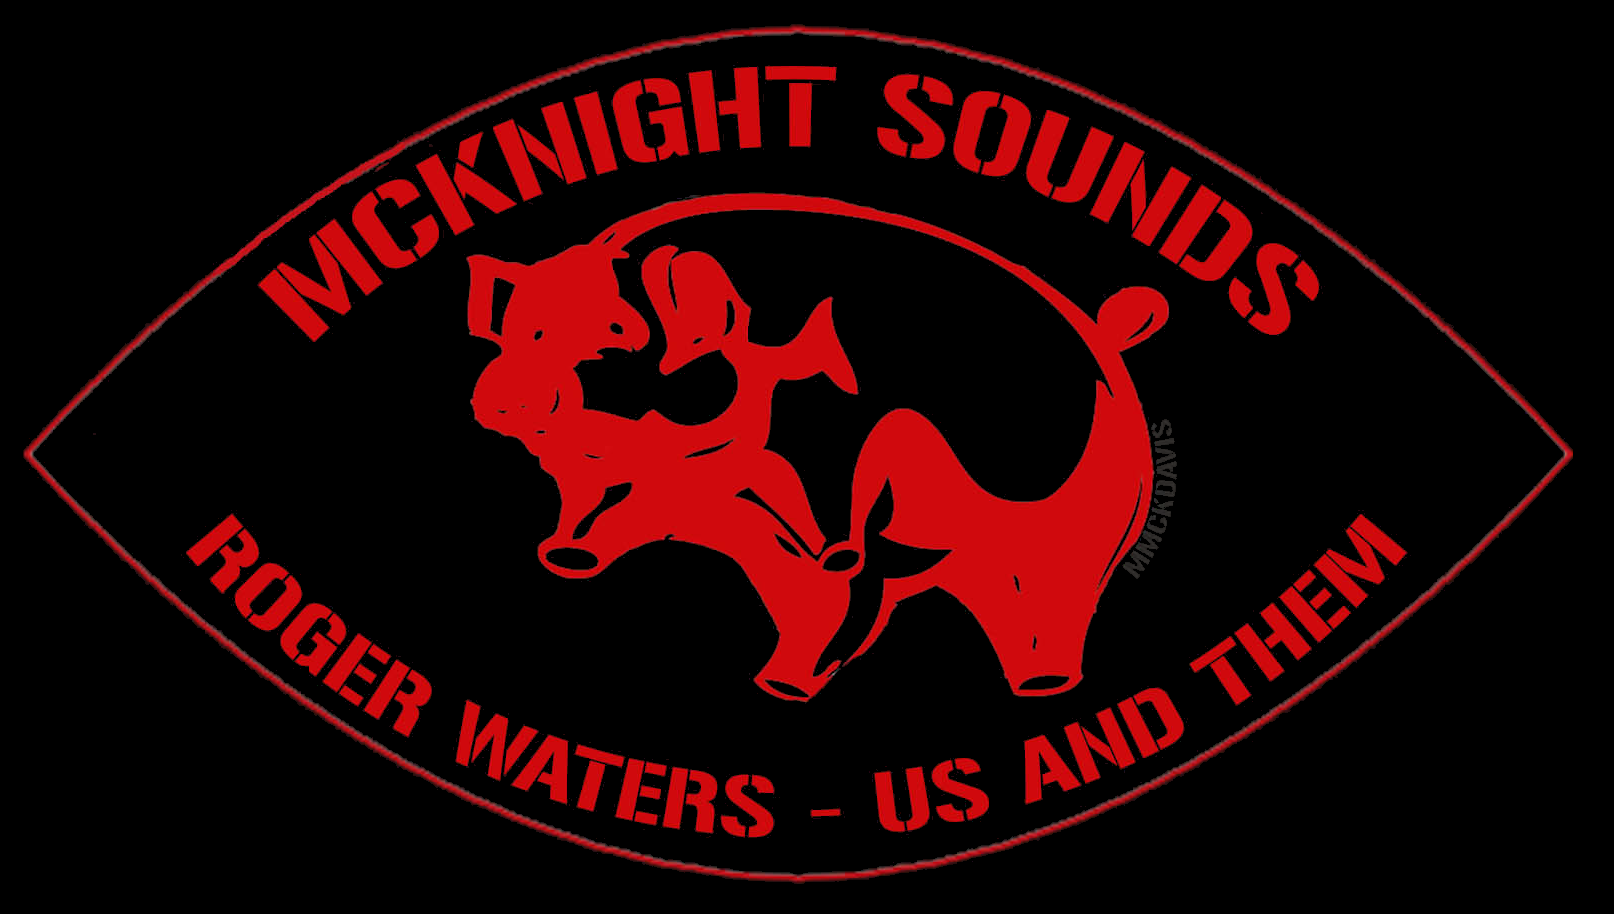 Mike McKnight - Sounds Inc.